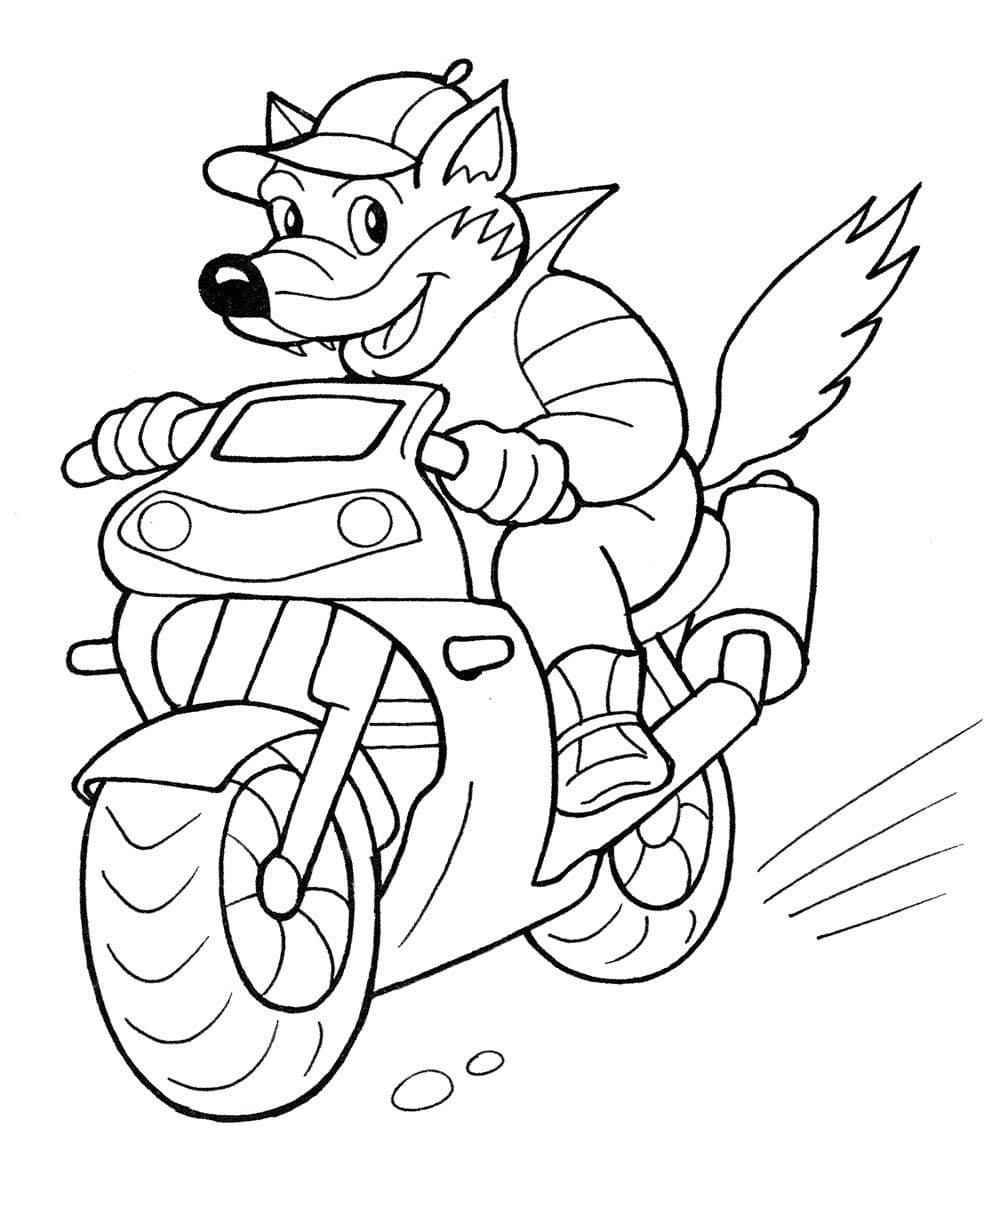 coloring pages for 7 year olds printable coloring pages for 7 year olds printable 7 for pages olds coloring year